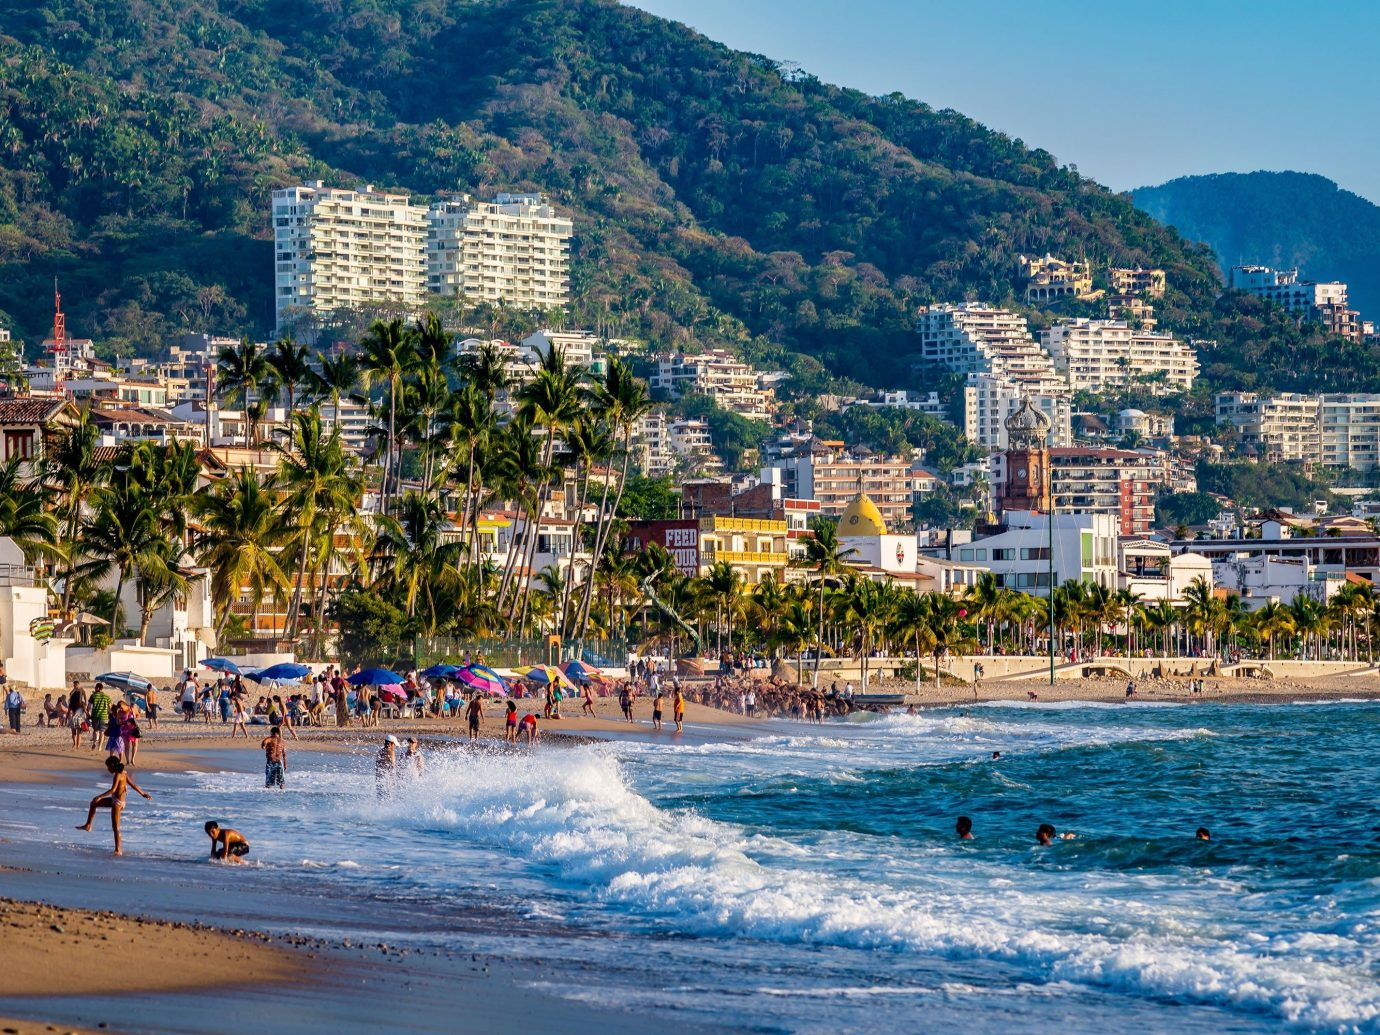 people playing on the beach in Puerto Vallarta, Mexico